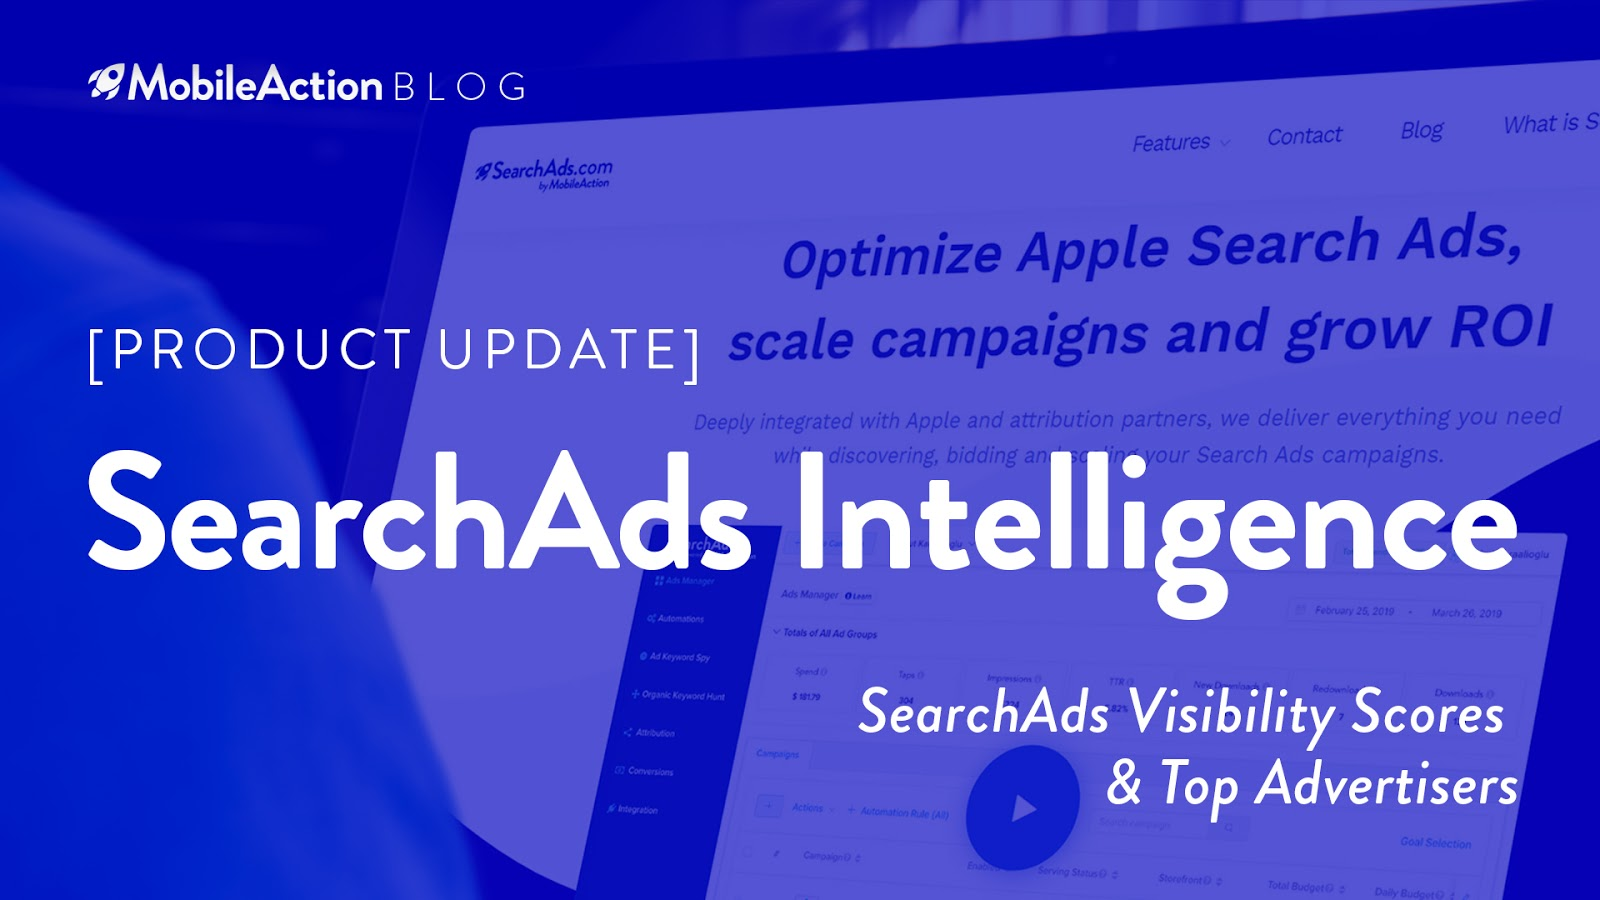 image featuring searchads intelligence product update of MobileAction